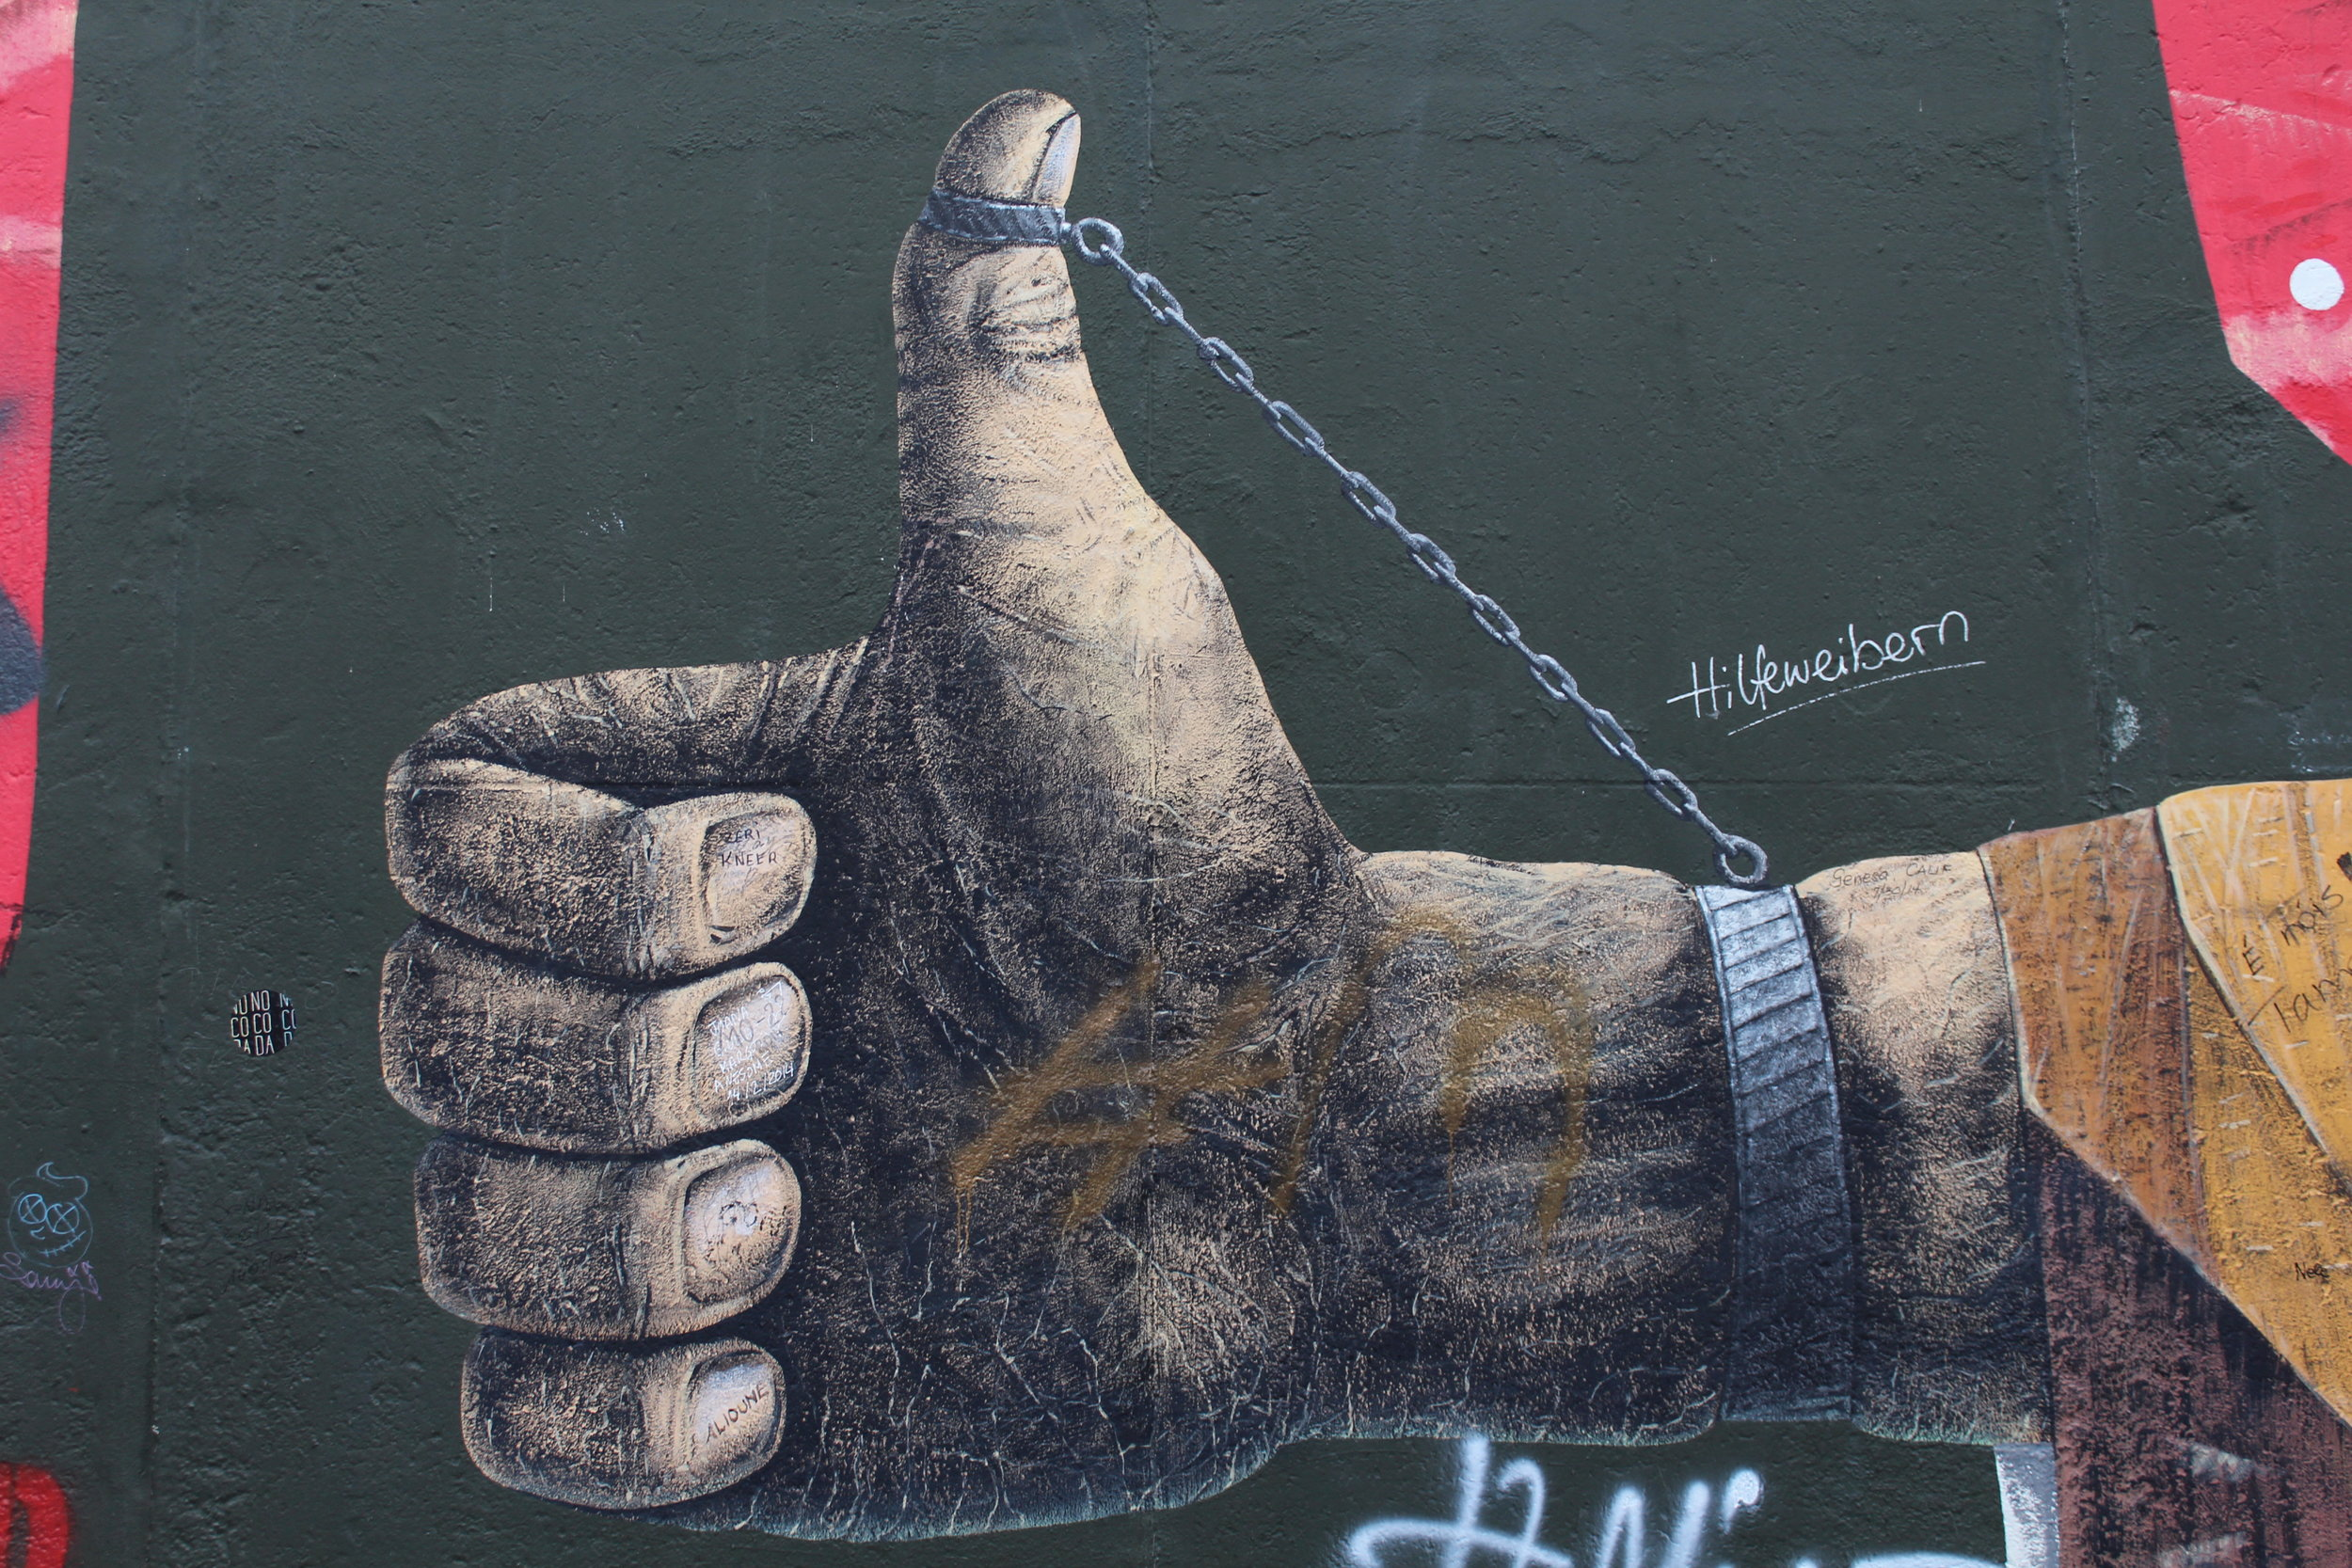 """This is one of the most powerful images on the wall. The artist is Michail Serebrjakow and he's called this piece """"Diagonale Lösung des Problems"""", which according to google translate means """"Diagonal solution of the problem"""". (Please, please, German-speaking readers, correct me if that's wrong.)"""